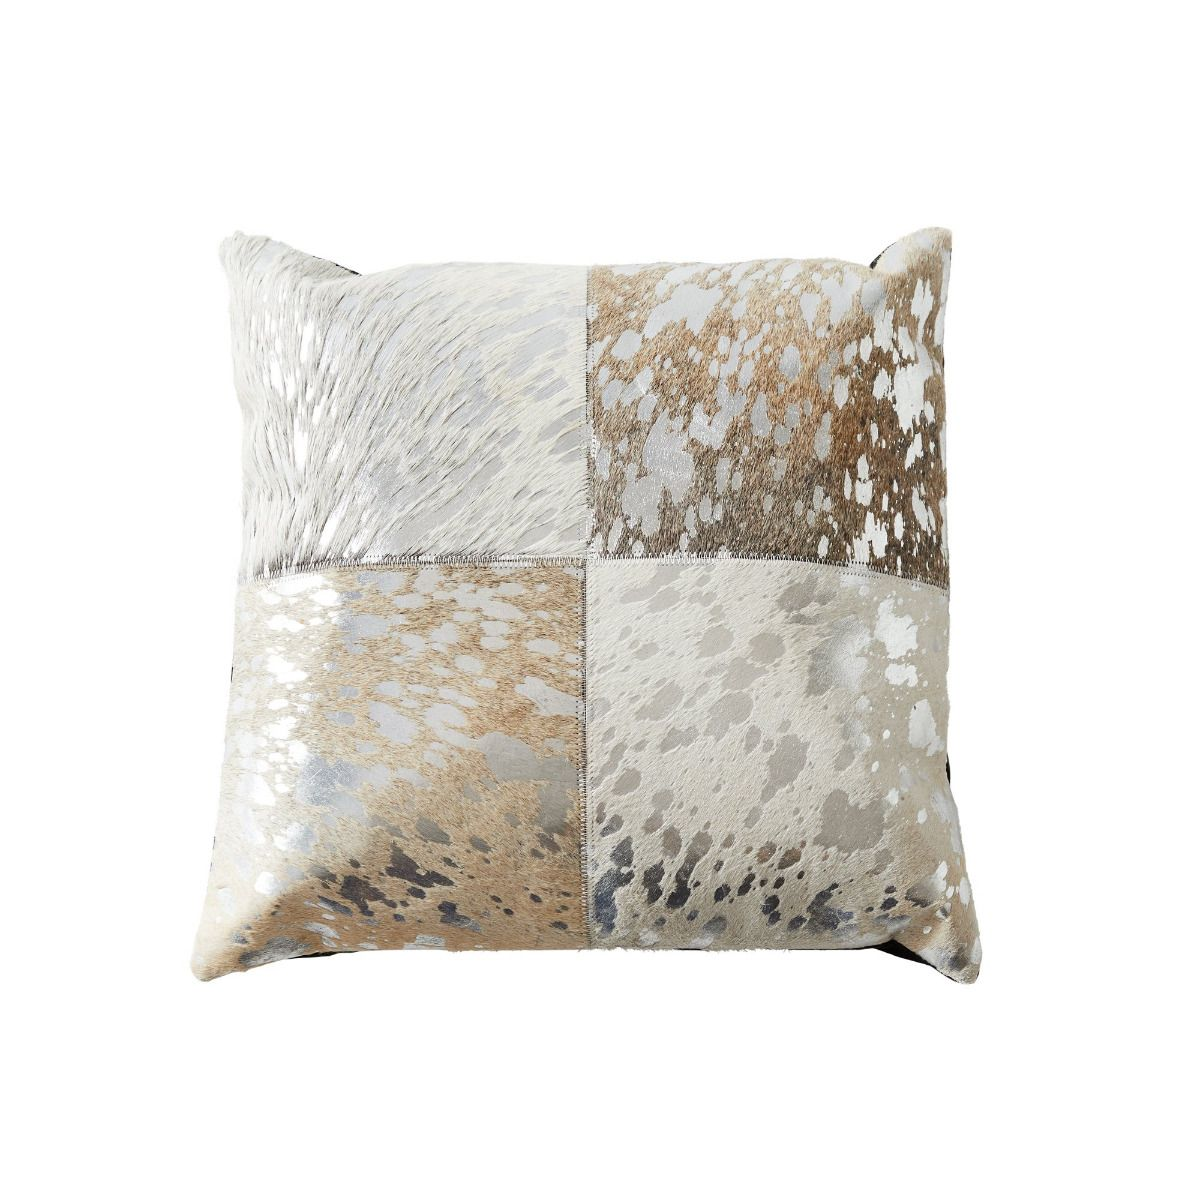 Starburst Leather Cushion II